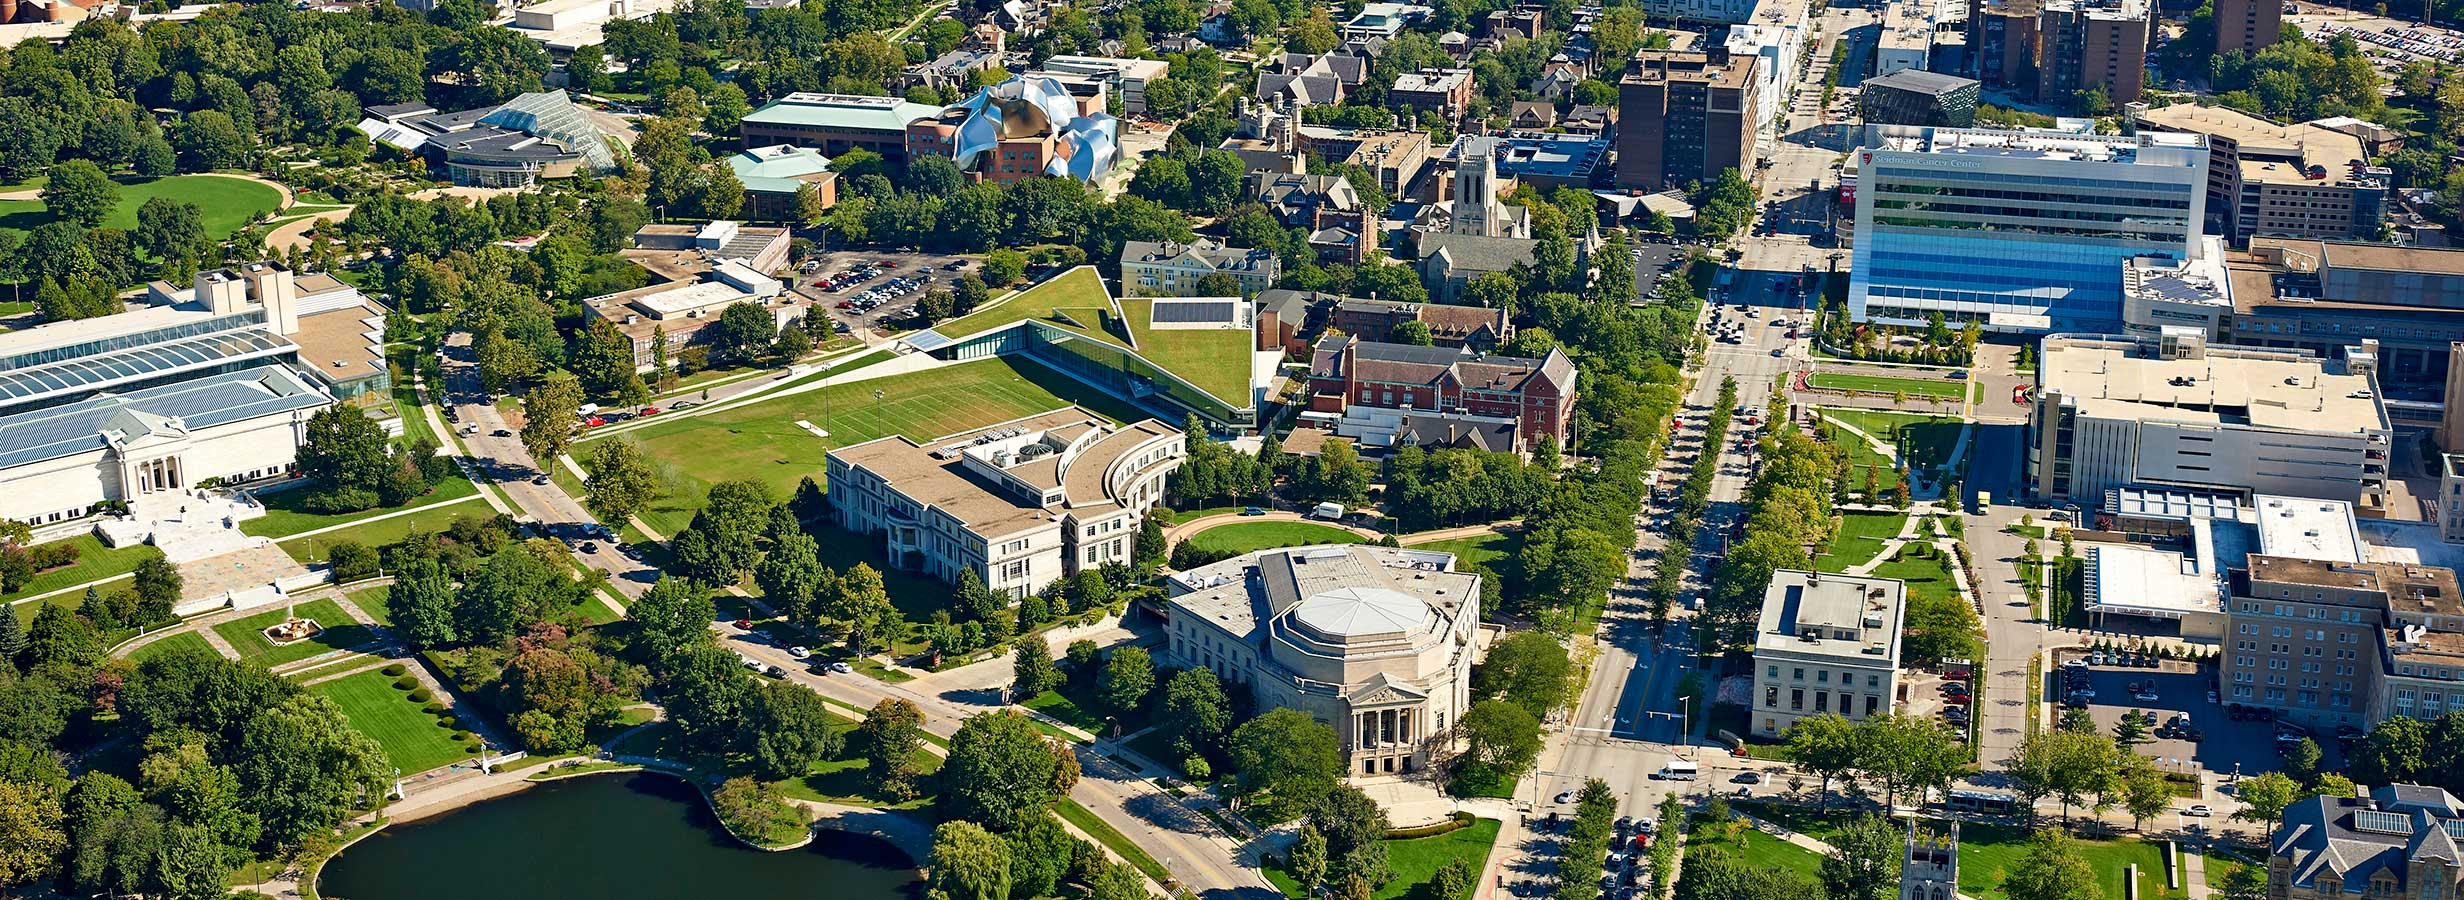 case western reserve university and university hospitals receive